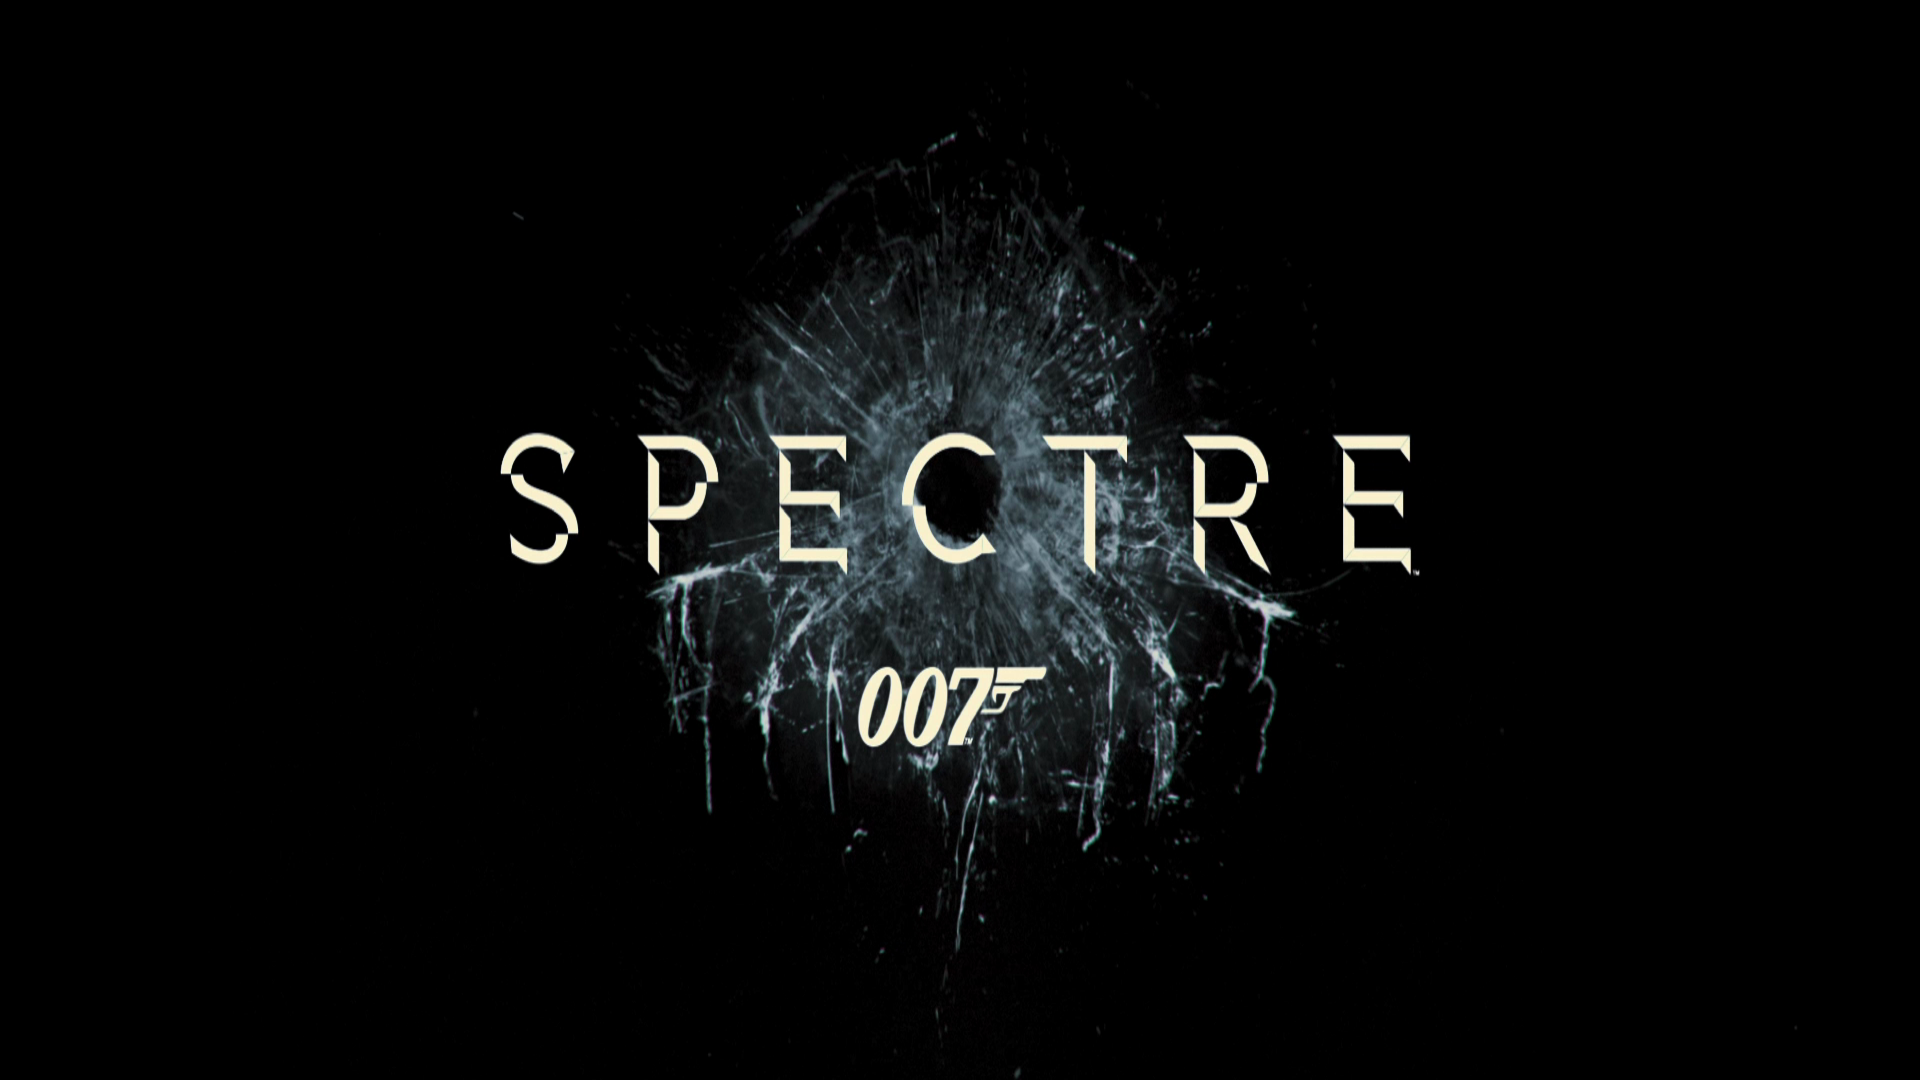 Spectre Wallpaper HD - WallpaperSafari